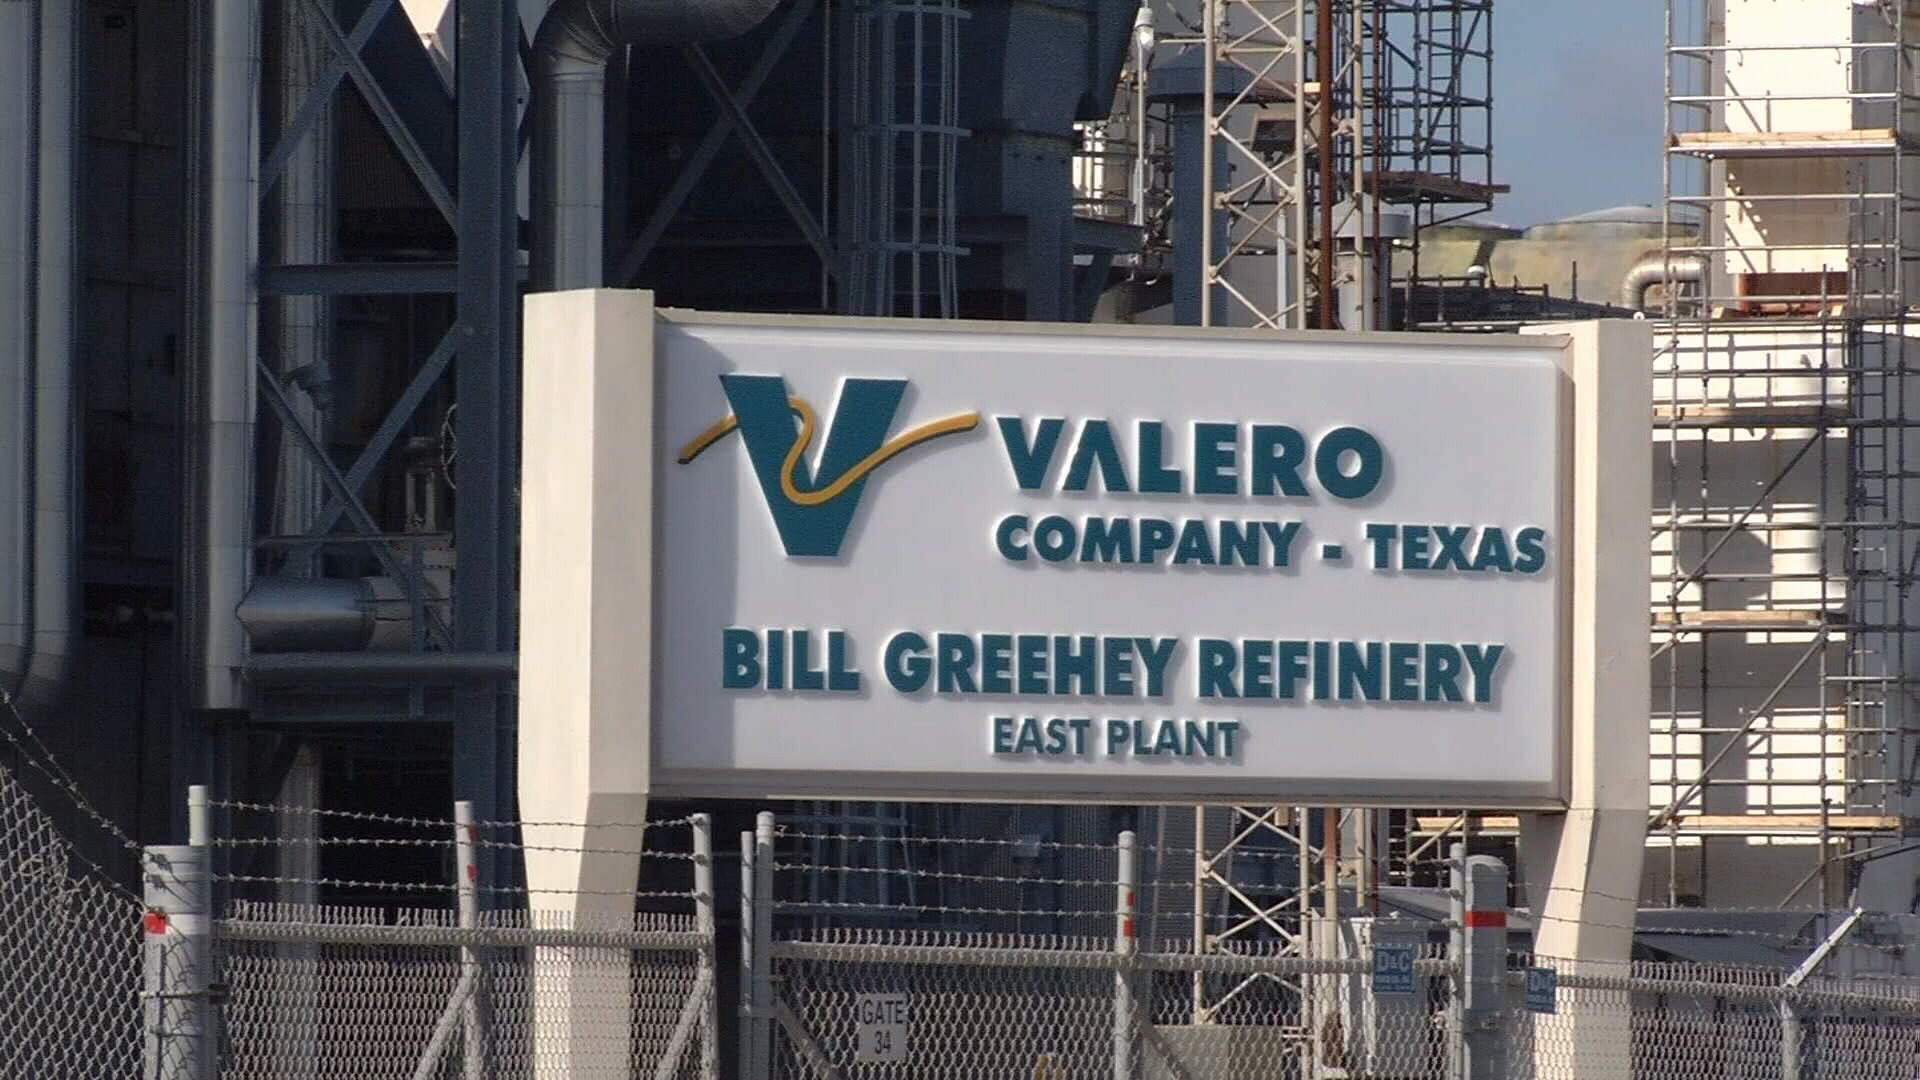 Valero Bill Greehey Refineries will present $600,000 to local children's charities today.